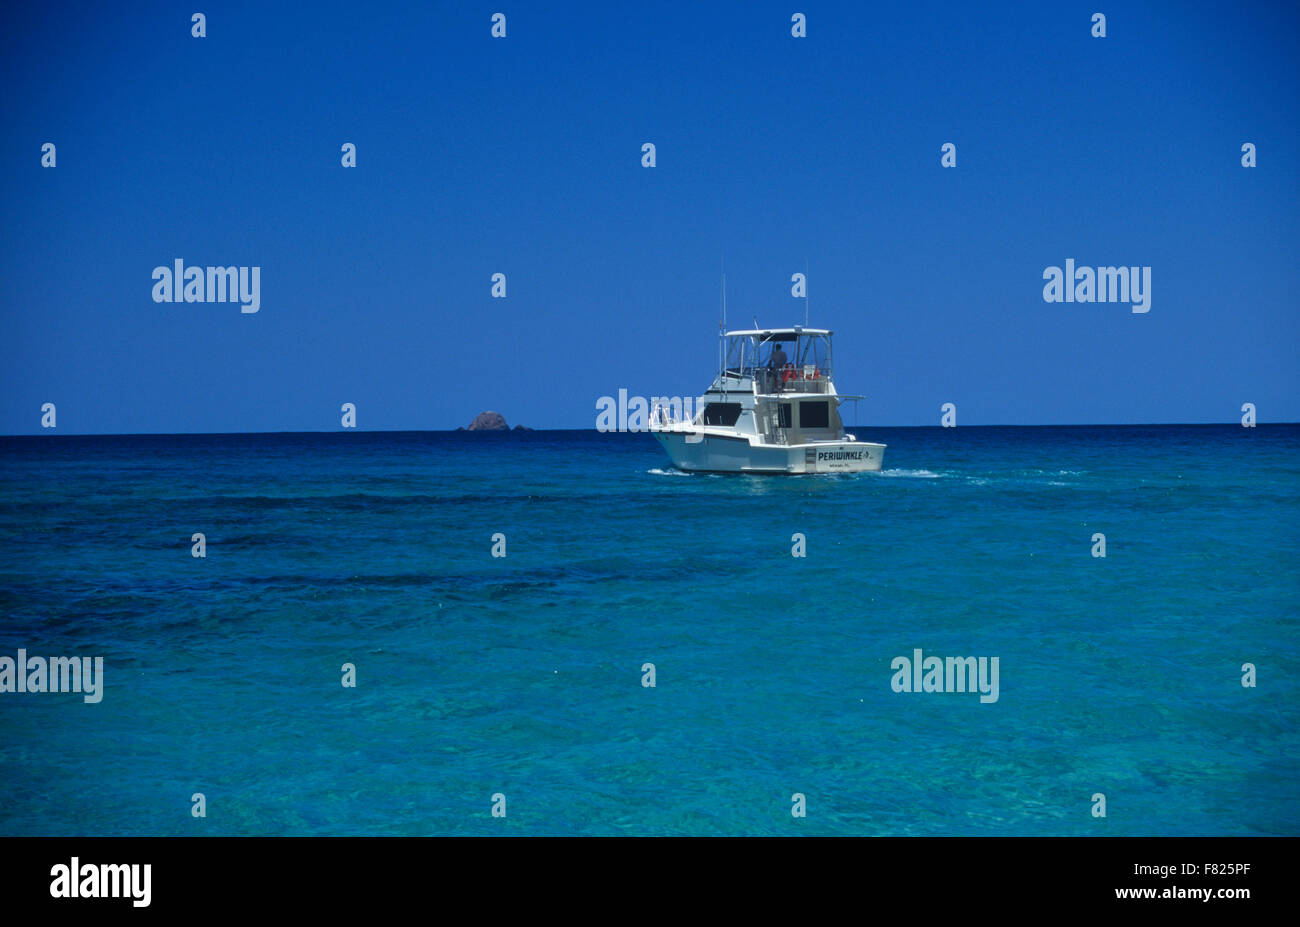 A sportfishing boat off Culebra Island, Puerto Rico. Stock Photo